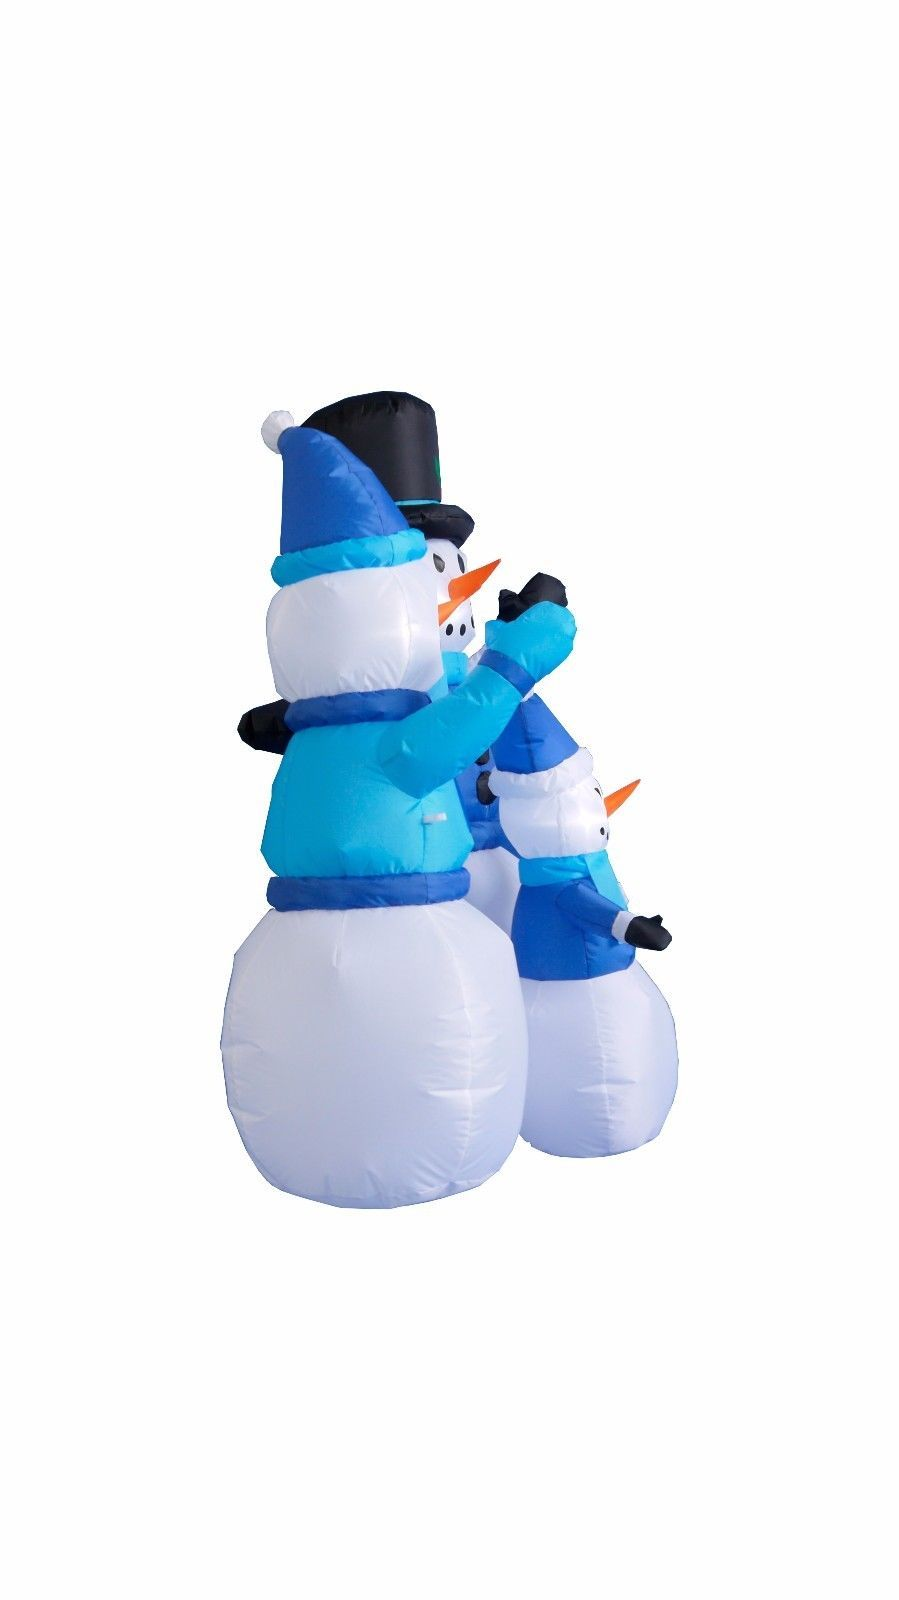 4 Foot Tall Christmas Inflatable Snowmen and 25 similar items